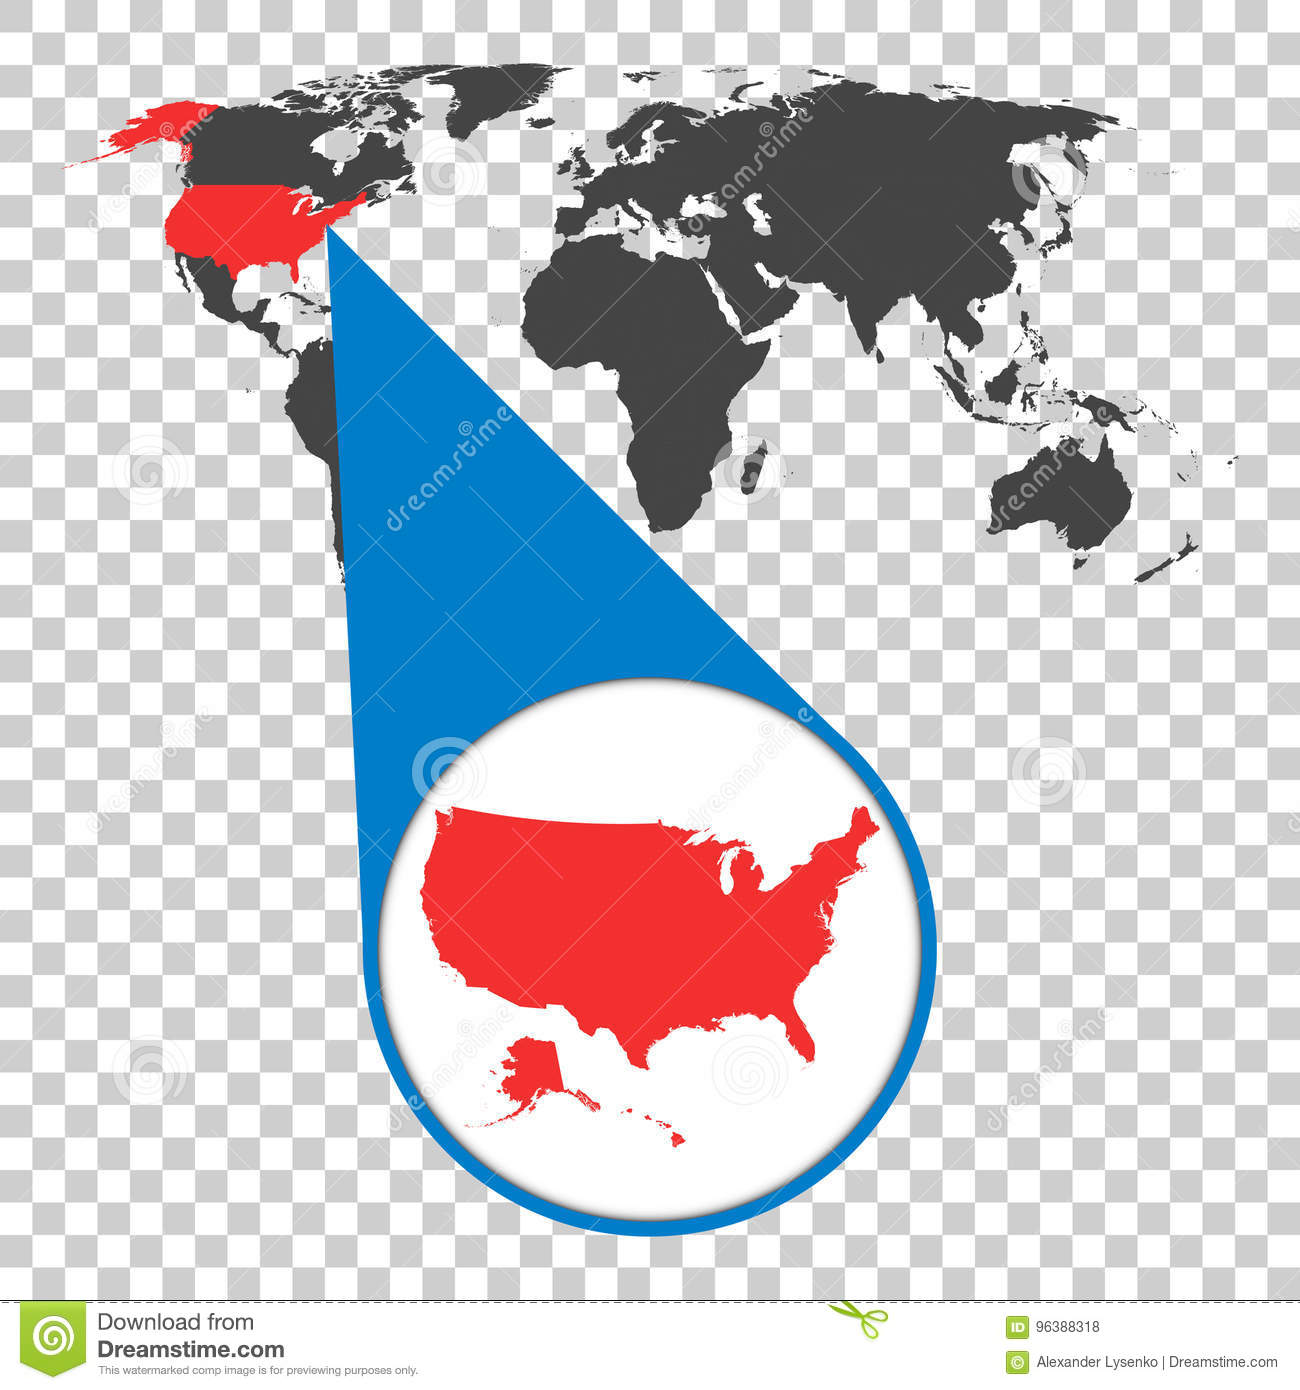 World Map With Zoom On USA. America Map In Loupe. Vector ... on massachusetts on map of usa, funny maps of usa, mapmof usa, large map of usa, diversity map usa, united states maps usa, satellite maps of usa, invasion maps of usa, show me a map of the usa, map of destruction of usa, full map of usa, i-40 map usa, atlas western usa, highway map of eastern usa, print maps of usa, virtual live satellite maps usa, world map usa, view maps of usa, map flight usa,